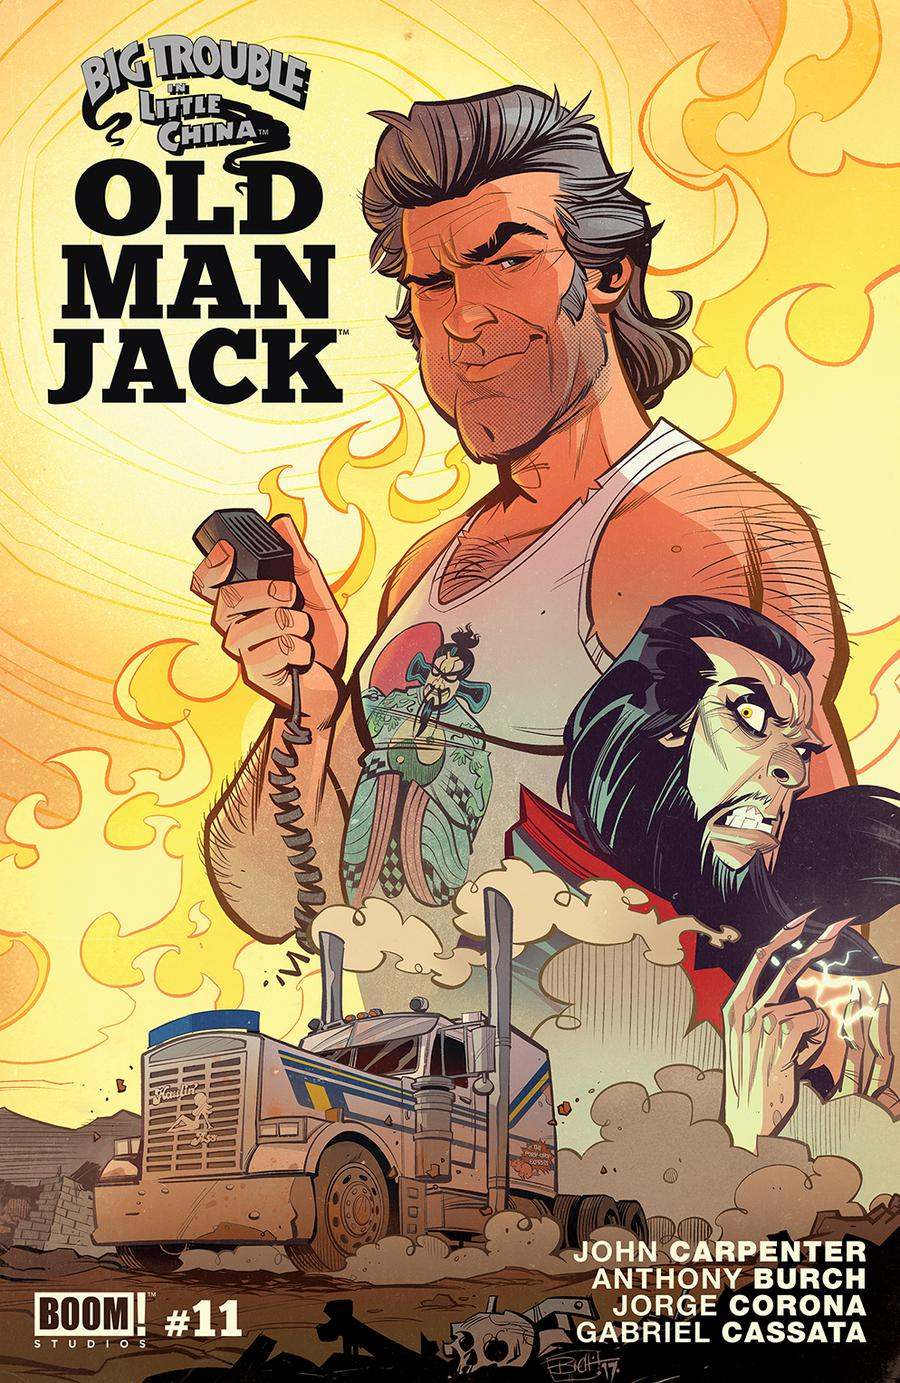 Big Trouble In Little China Old Man Jack #11 Cover A Regular Brett Parson Cover